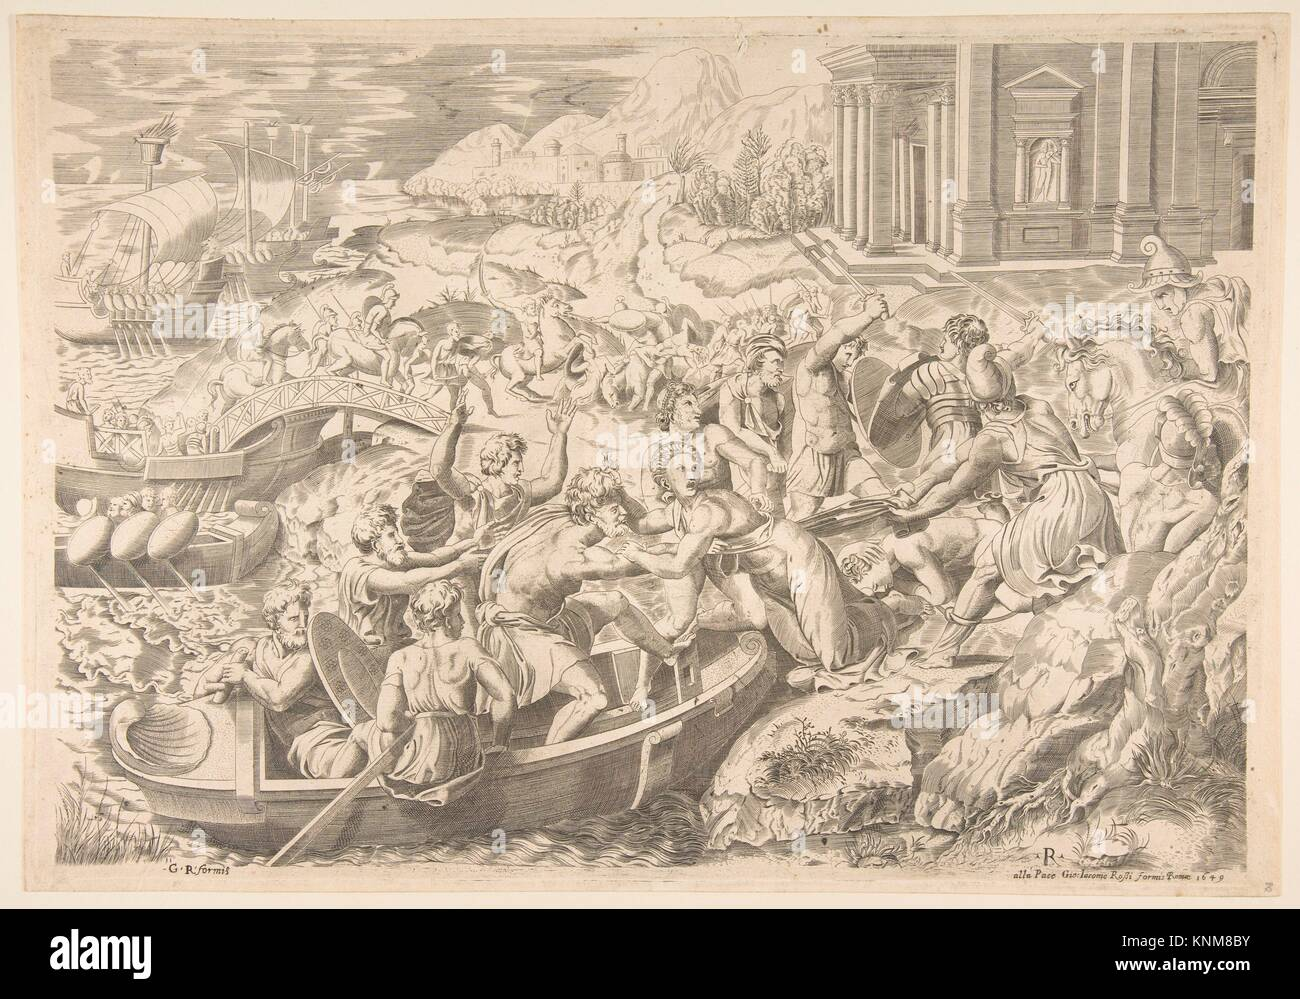 The abduction of Helen; battle scene on a shore with two men pulling Helen into a boat at center and another man Stock Photo